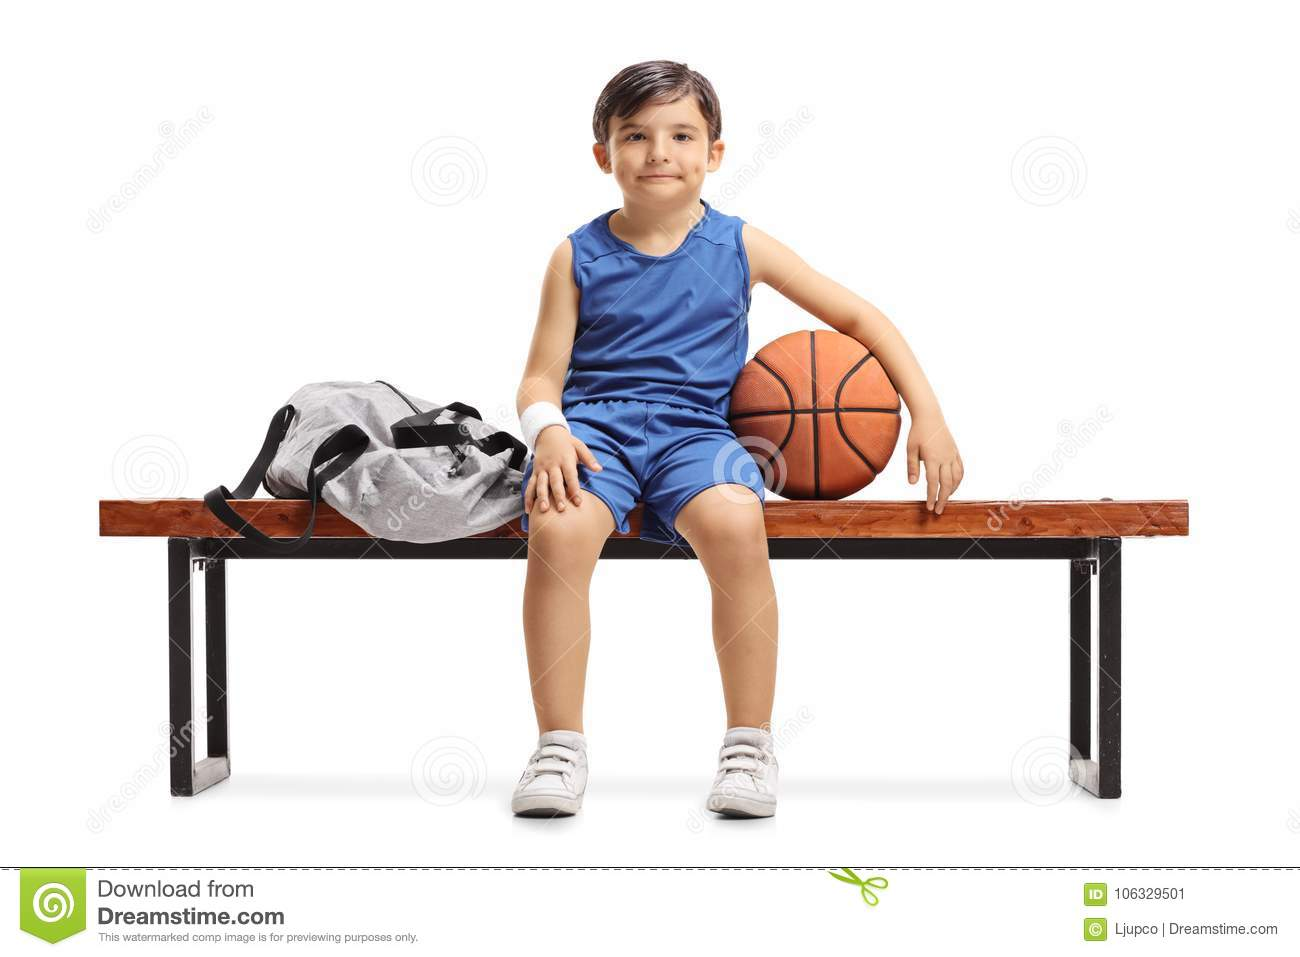 Marvelous Little Basketball Player Sitting On A Wooden Bench Next To A Machost Co Dining Chair Design Ideas Machostcouk